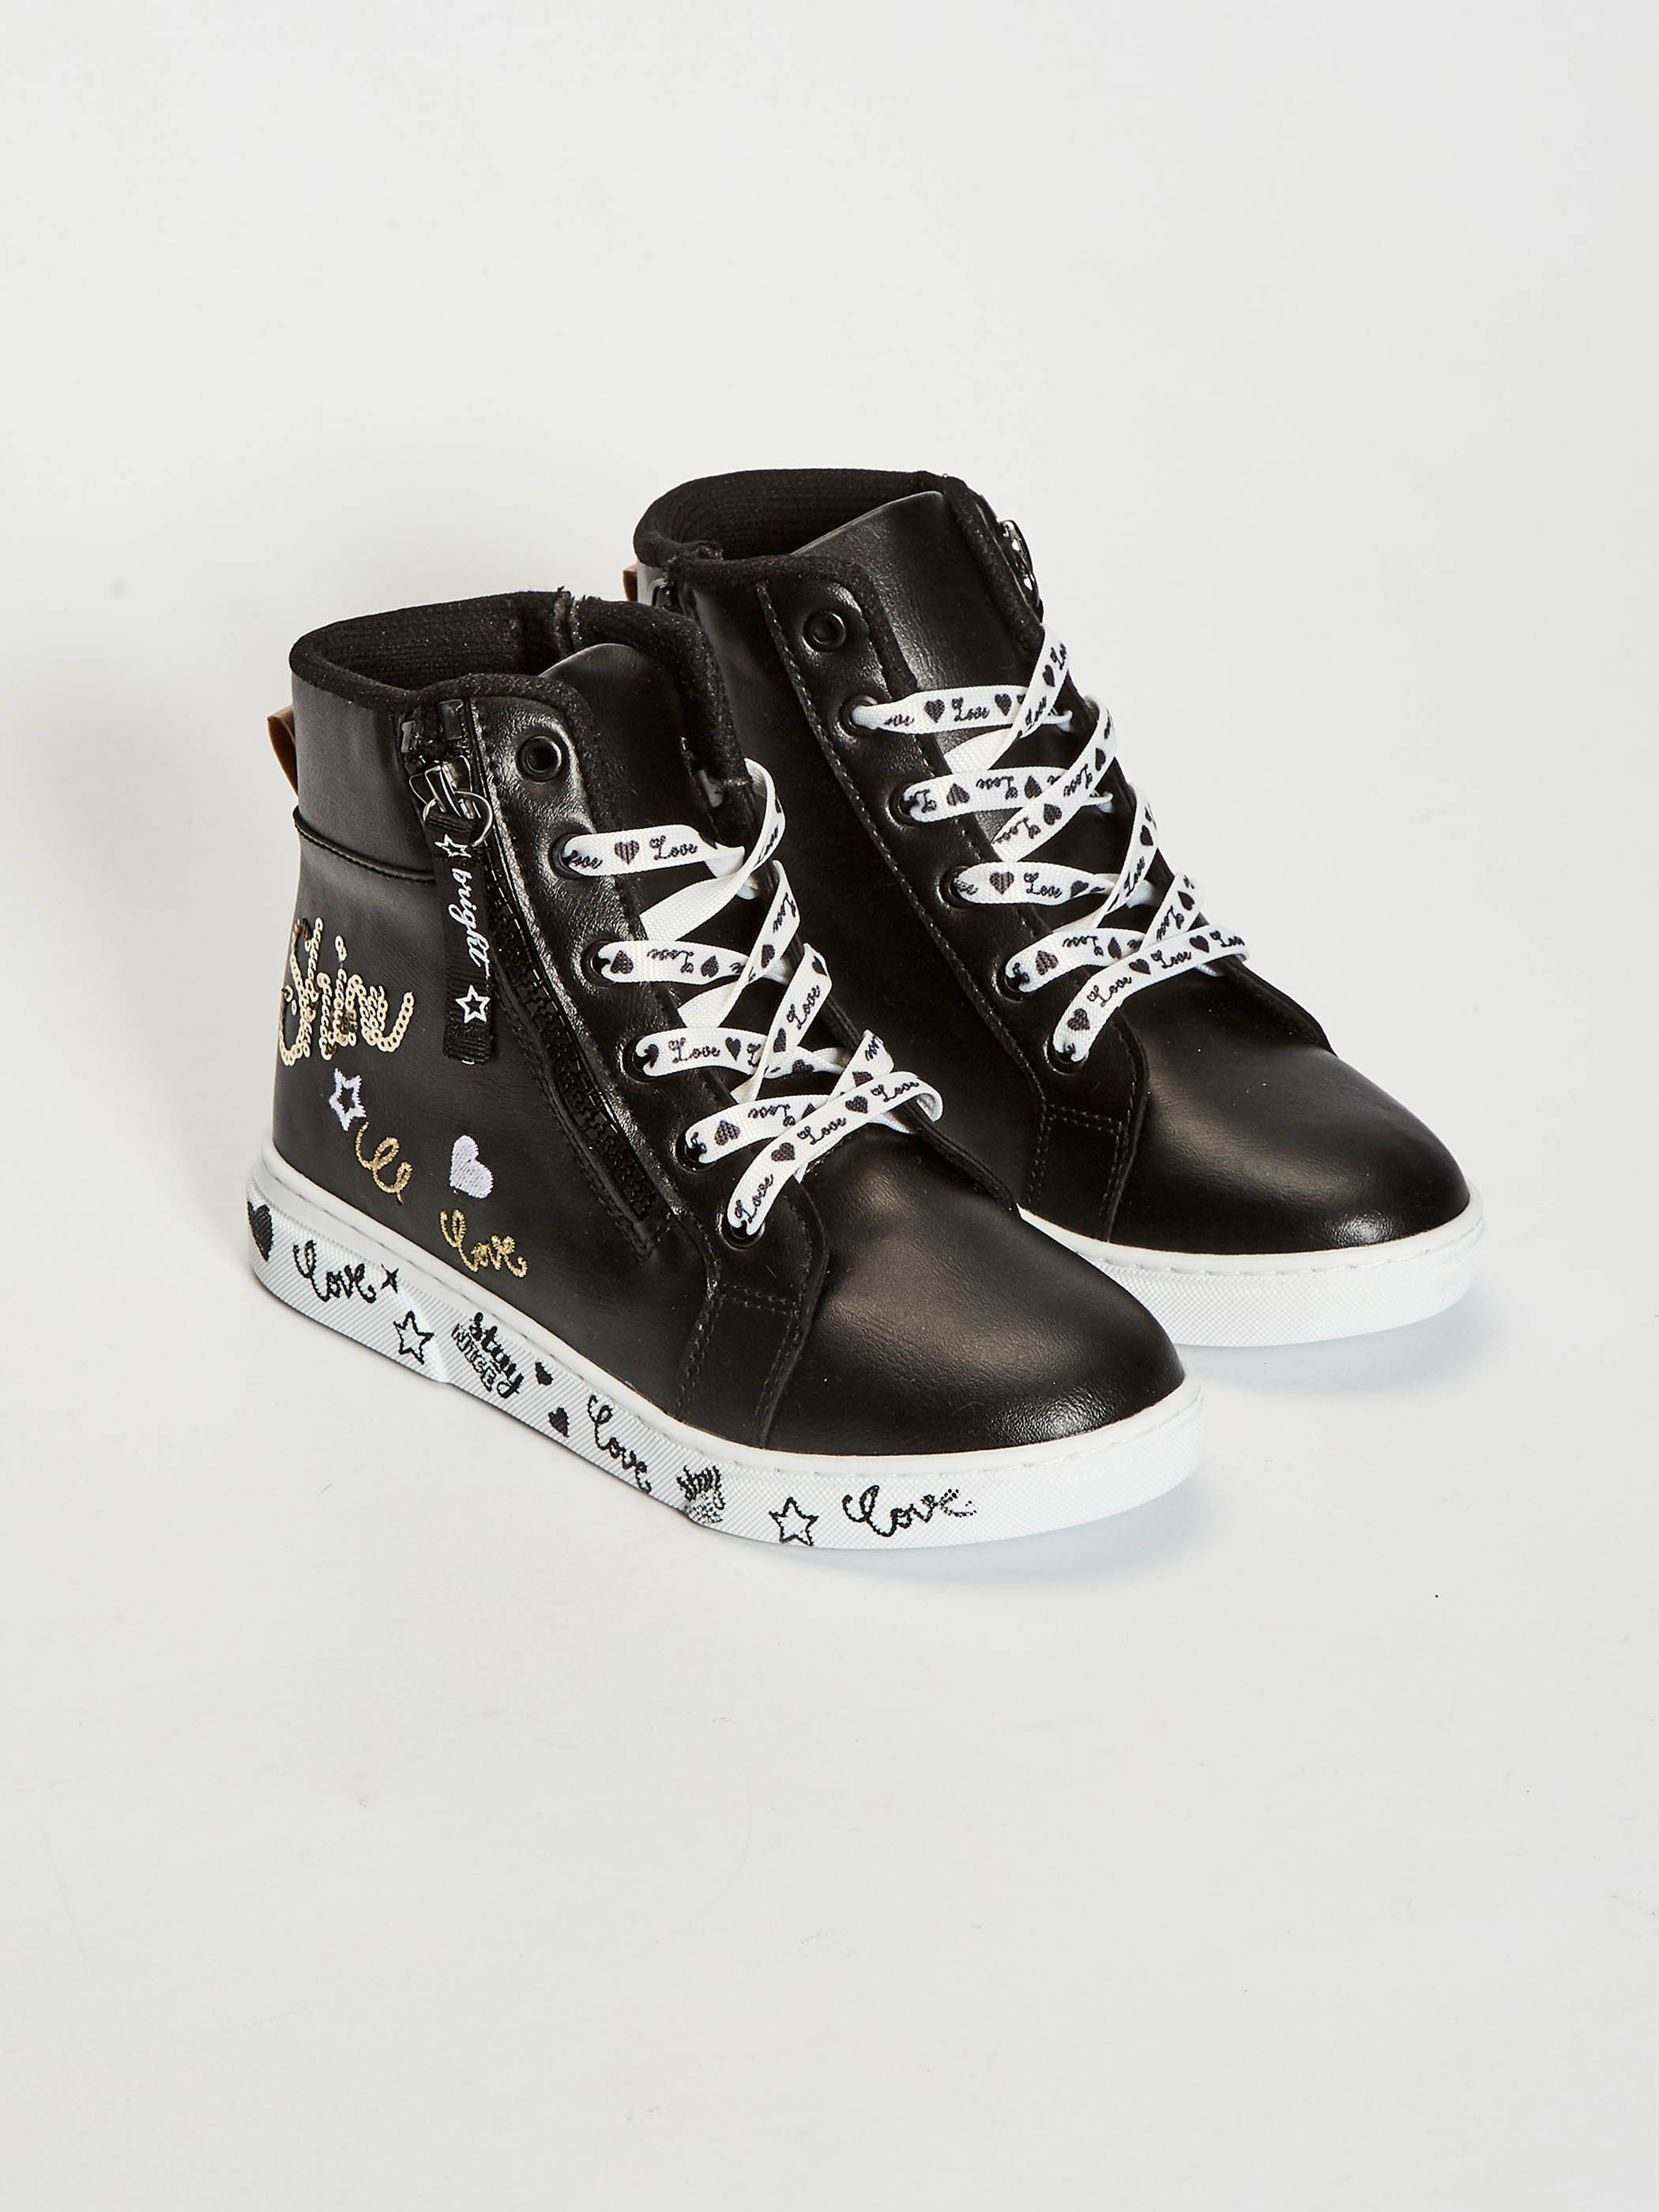 BLACK - Girl's Lace-up Sneakers - 0WHY31Z4